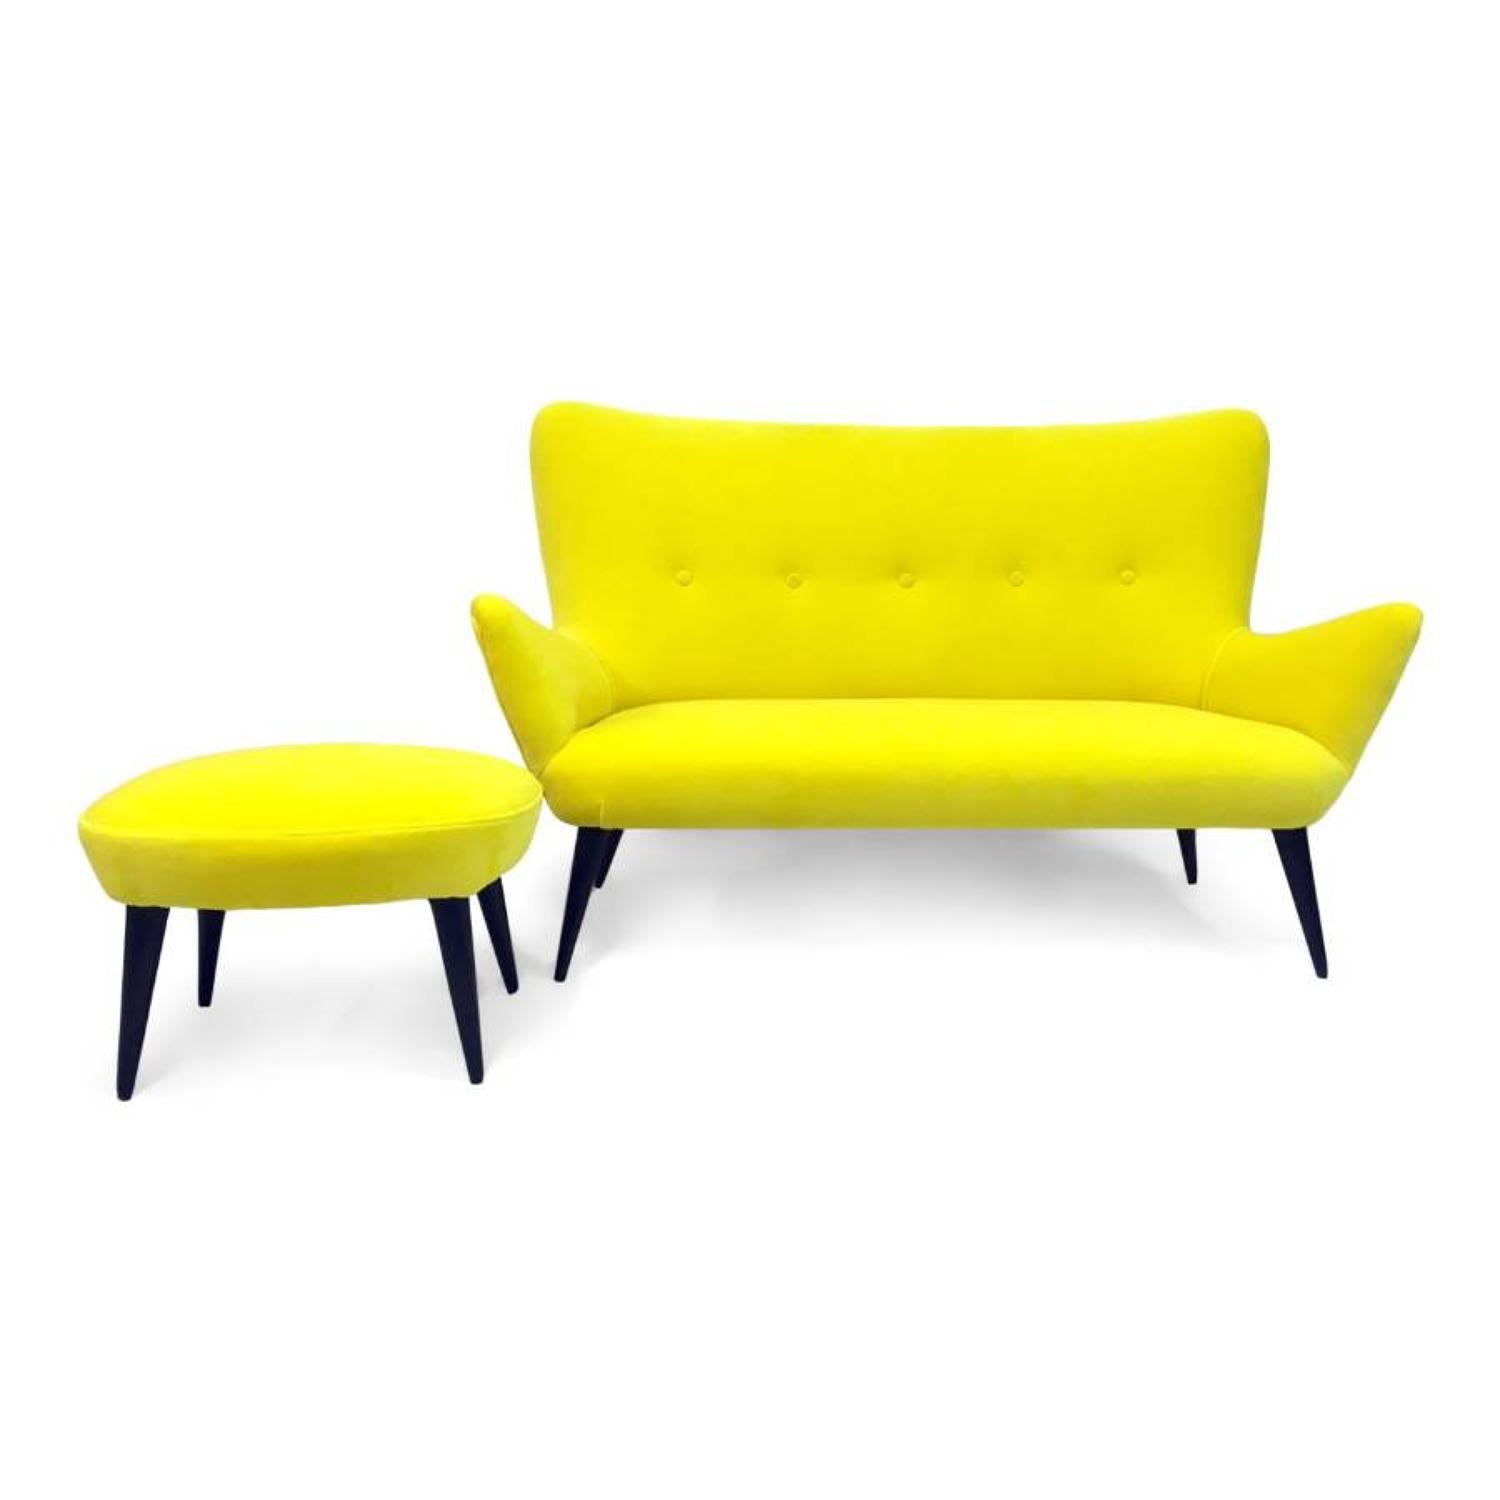 1950s Italian sofa and stool in yellow velvet